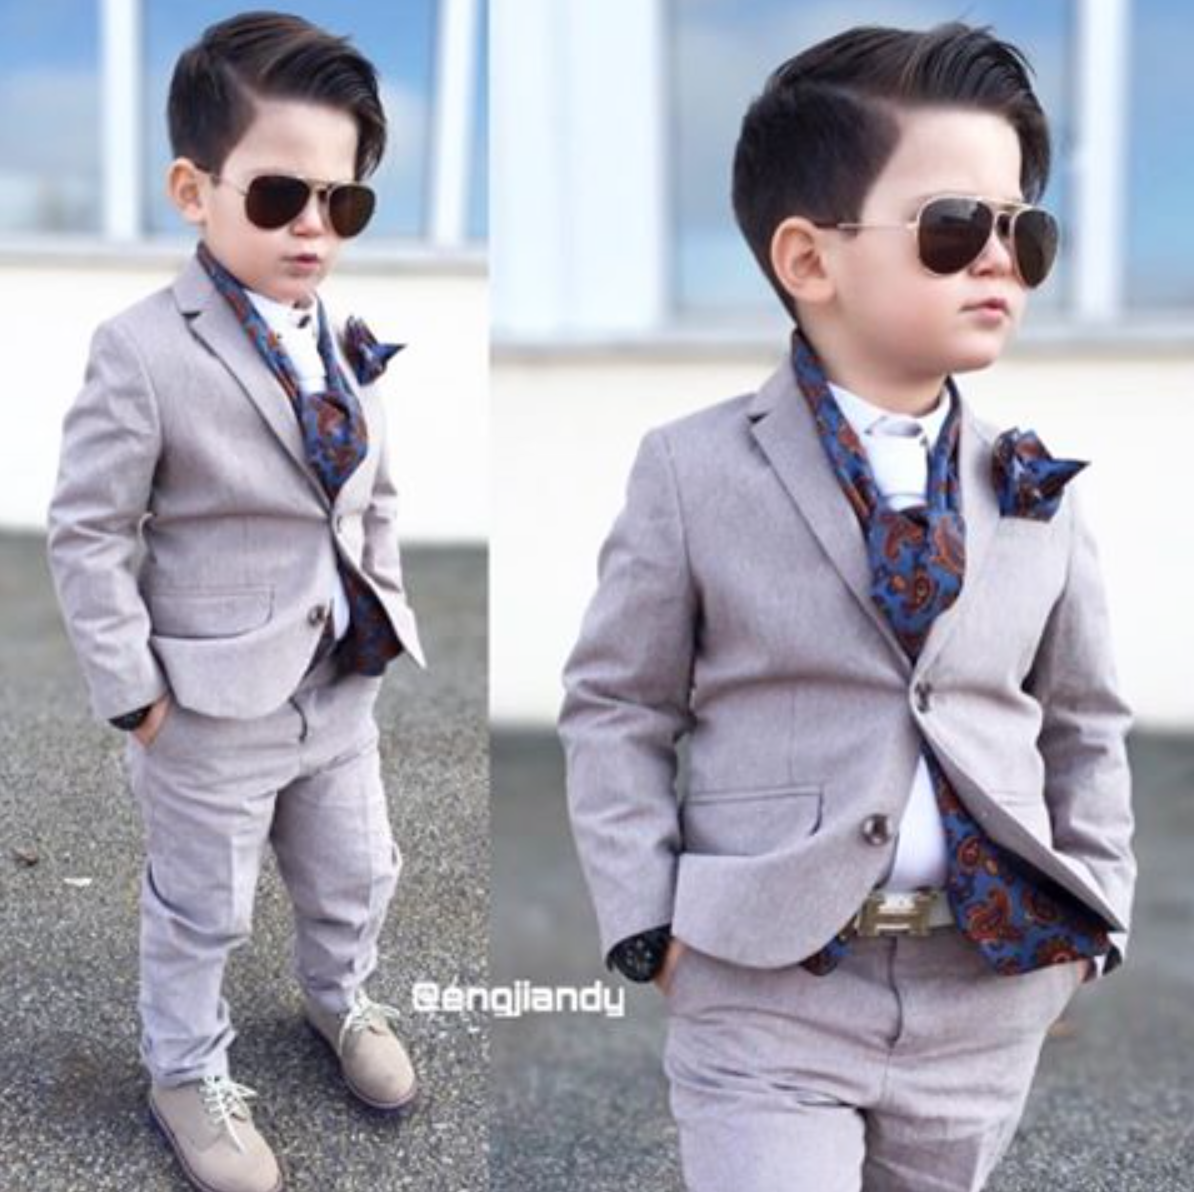 Deck out your little ones in kids ties, pocket squares and scarves